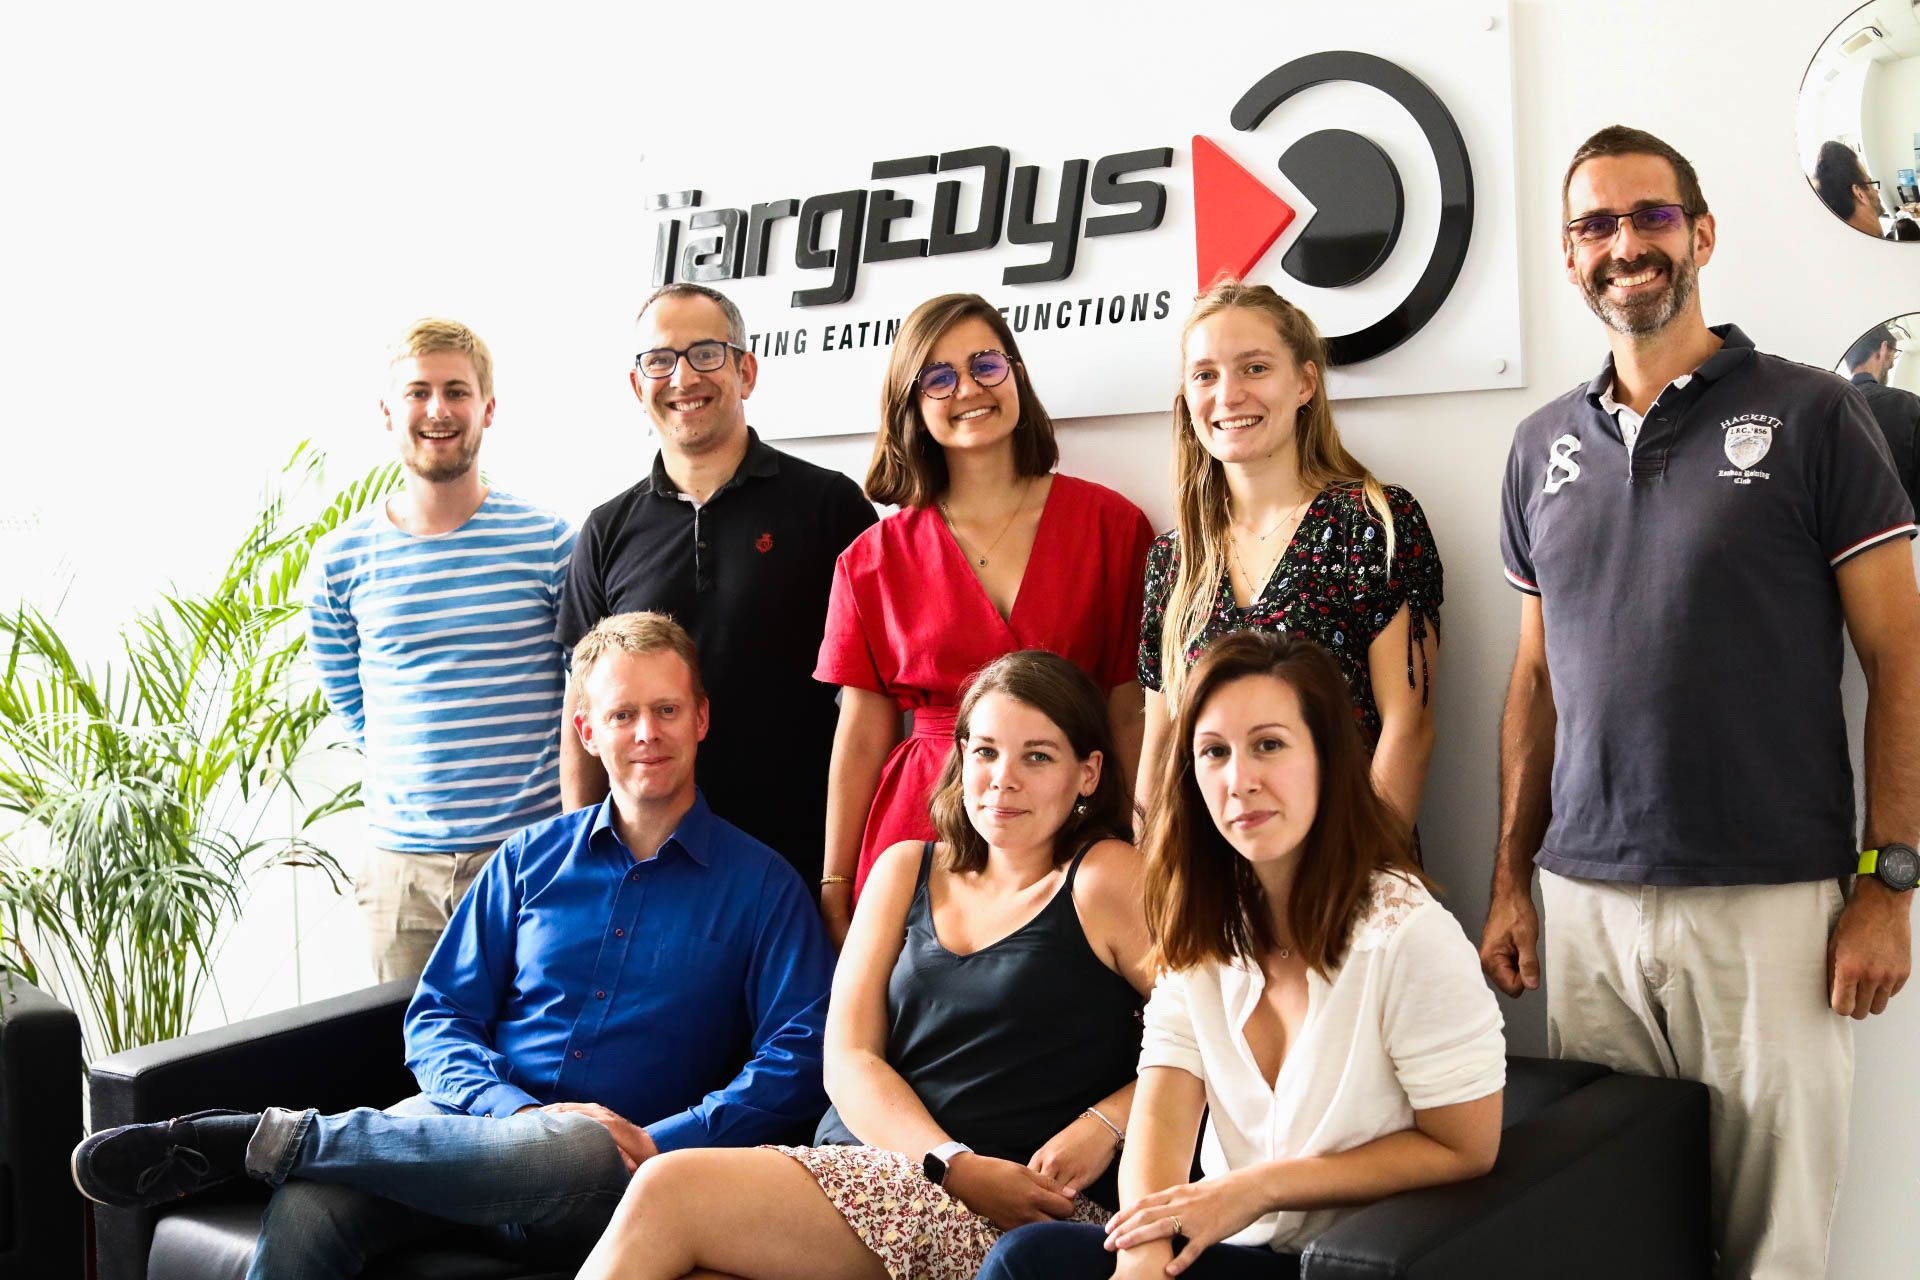 equipe targedys